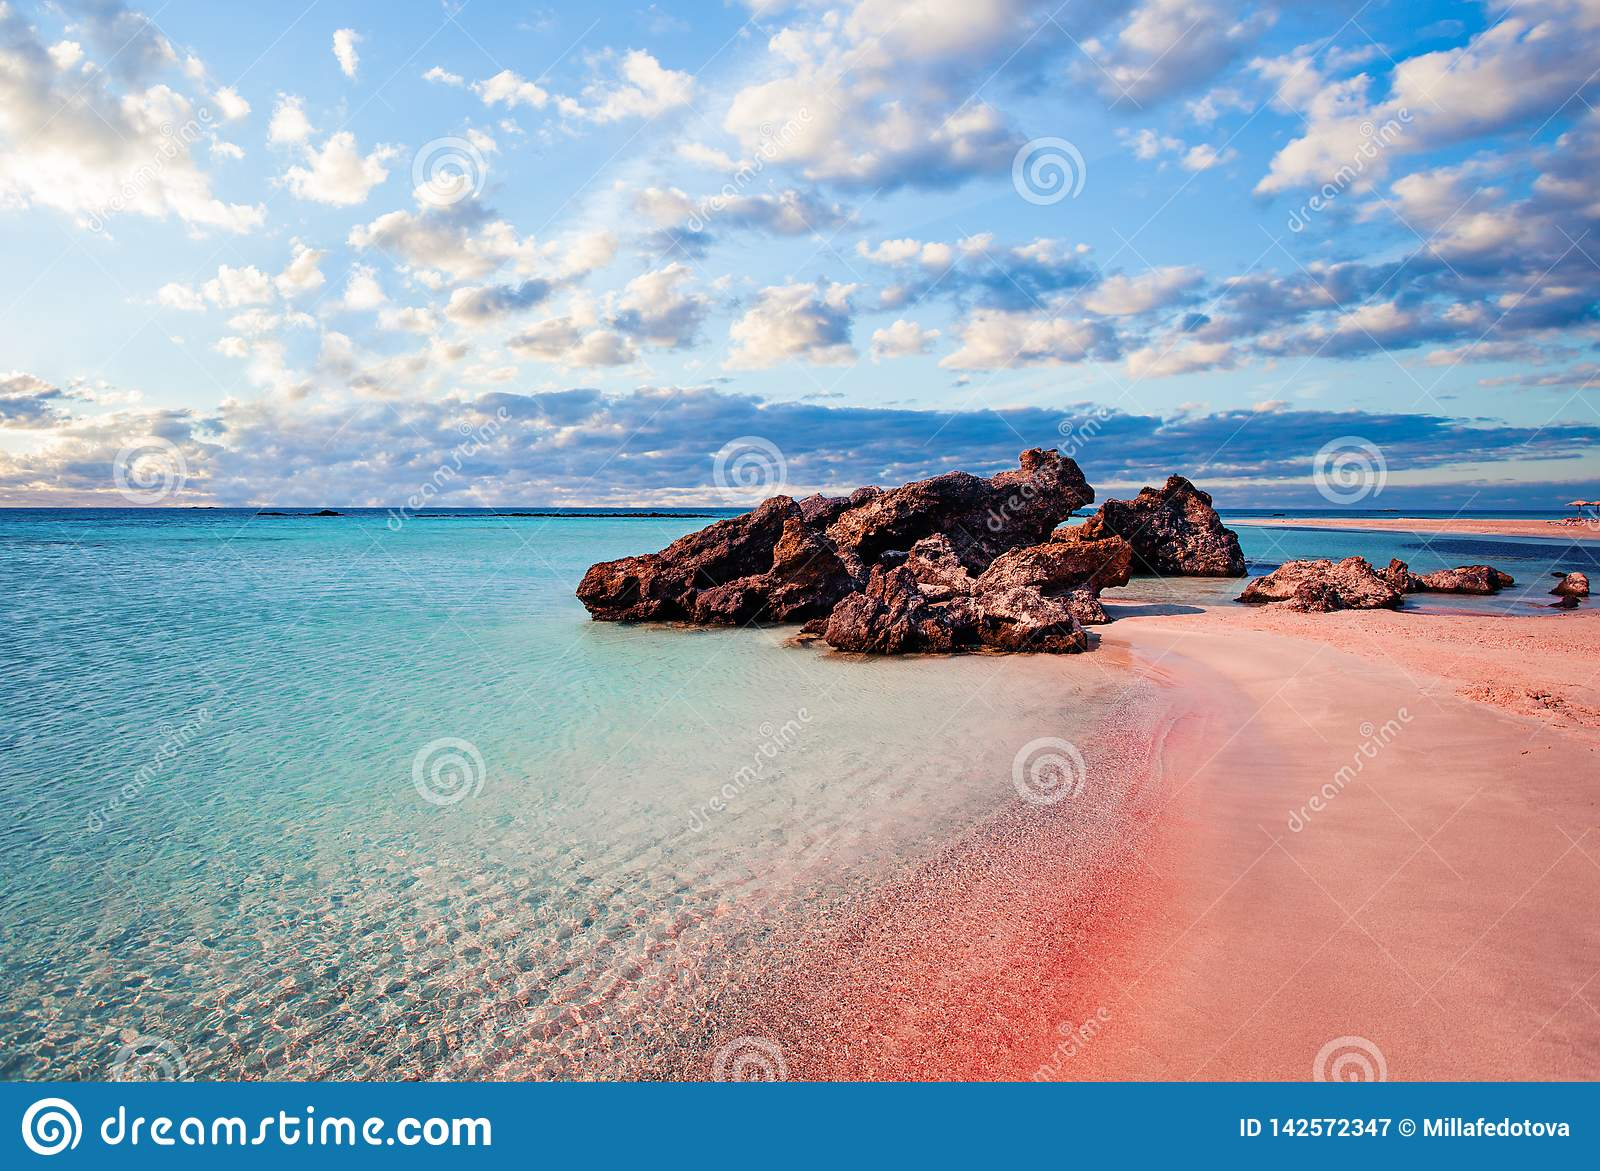 Crete Skyline Elafonissi Beach With Pink Sand Against Blue